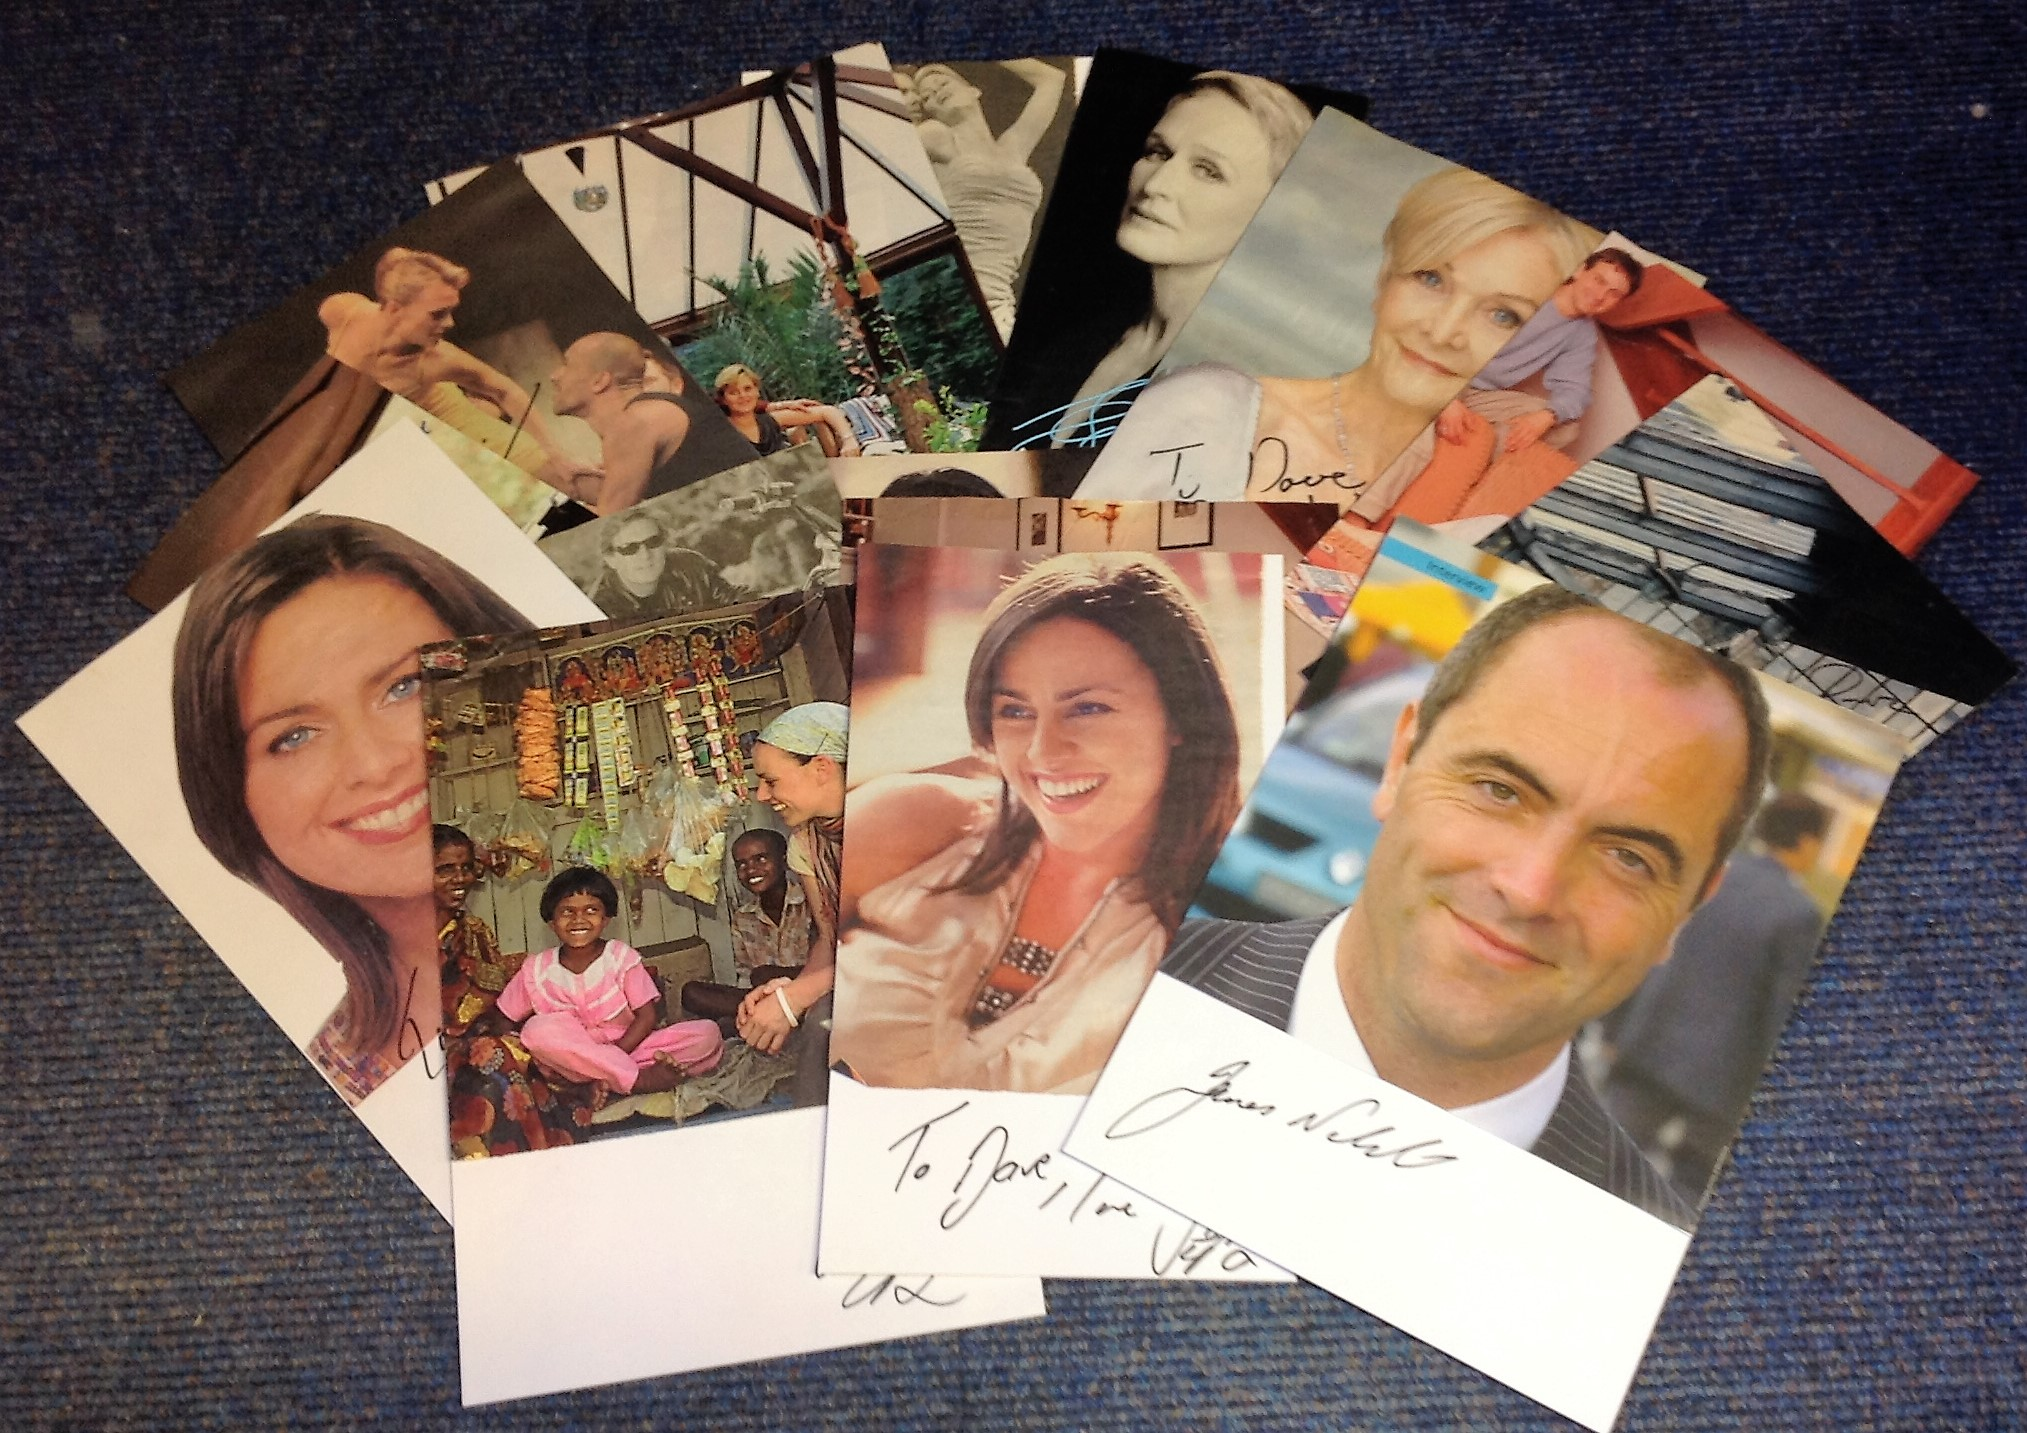 Lot 11 - TV/Film/Theatre signed collection. 16 items, mainly newspaper photos. Some of names included are